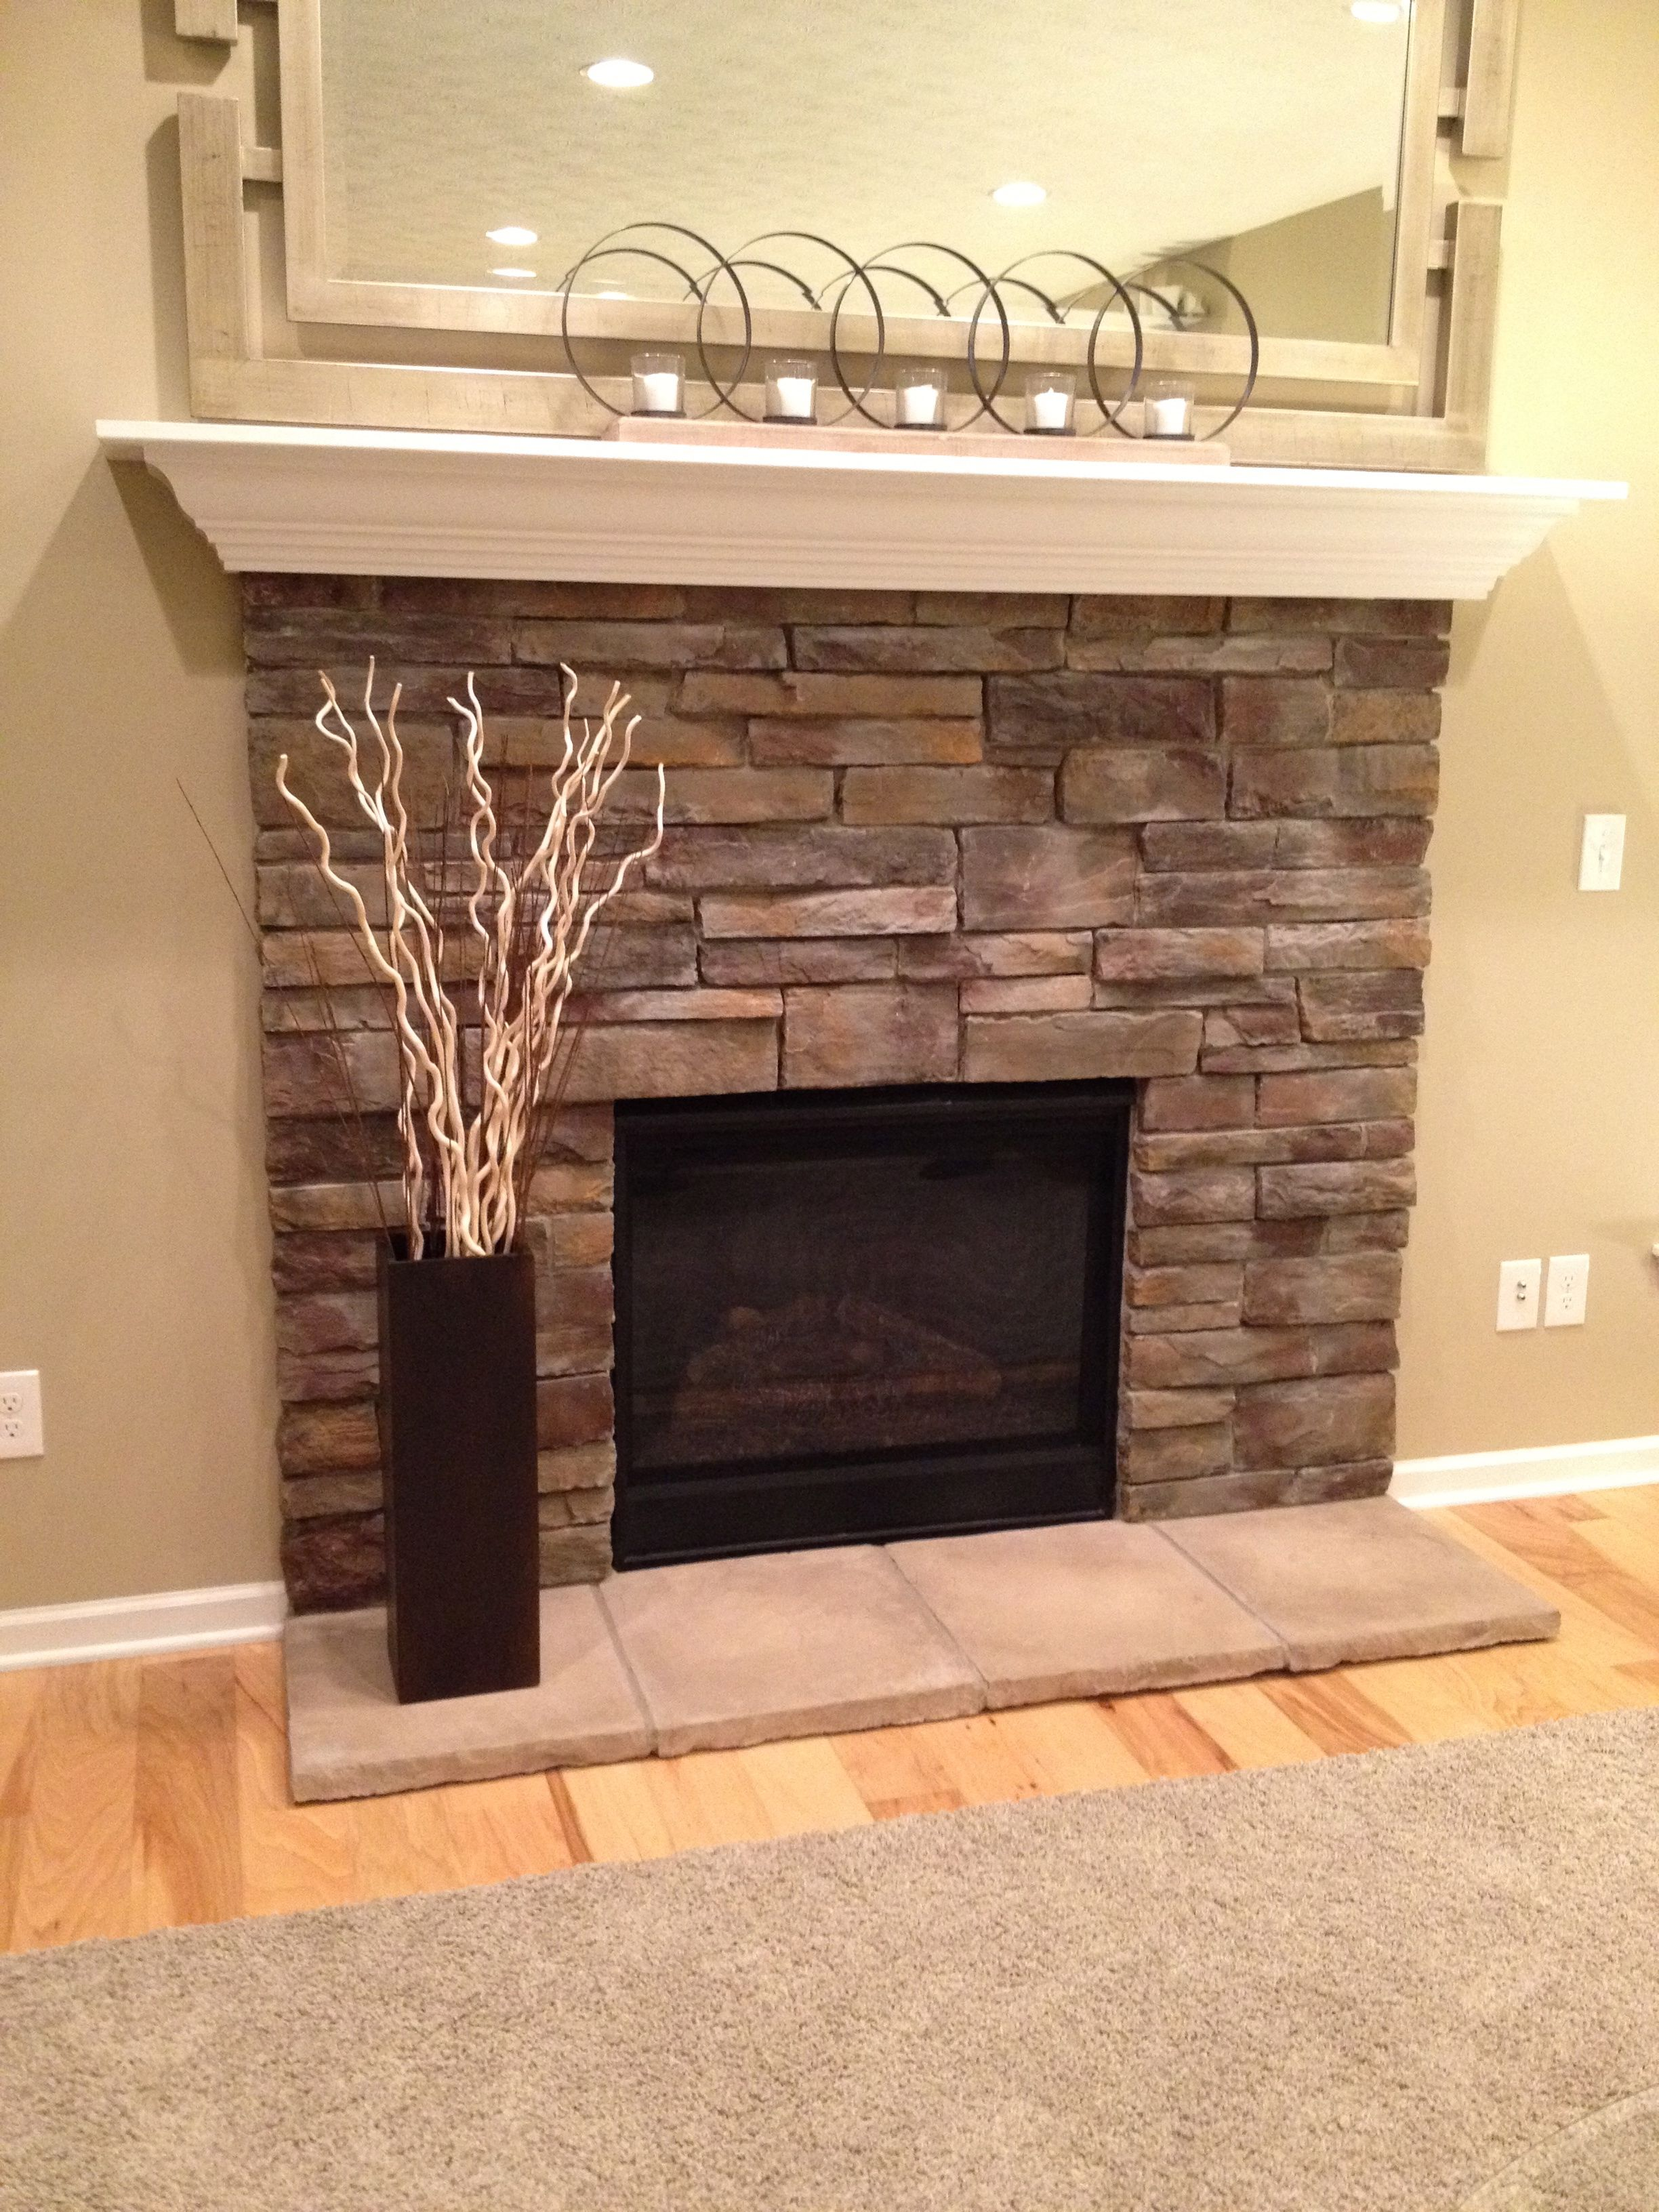 Standard Stone Fireplace  With Flush Stone Hearth This Is